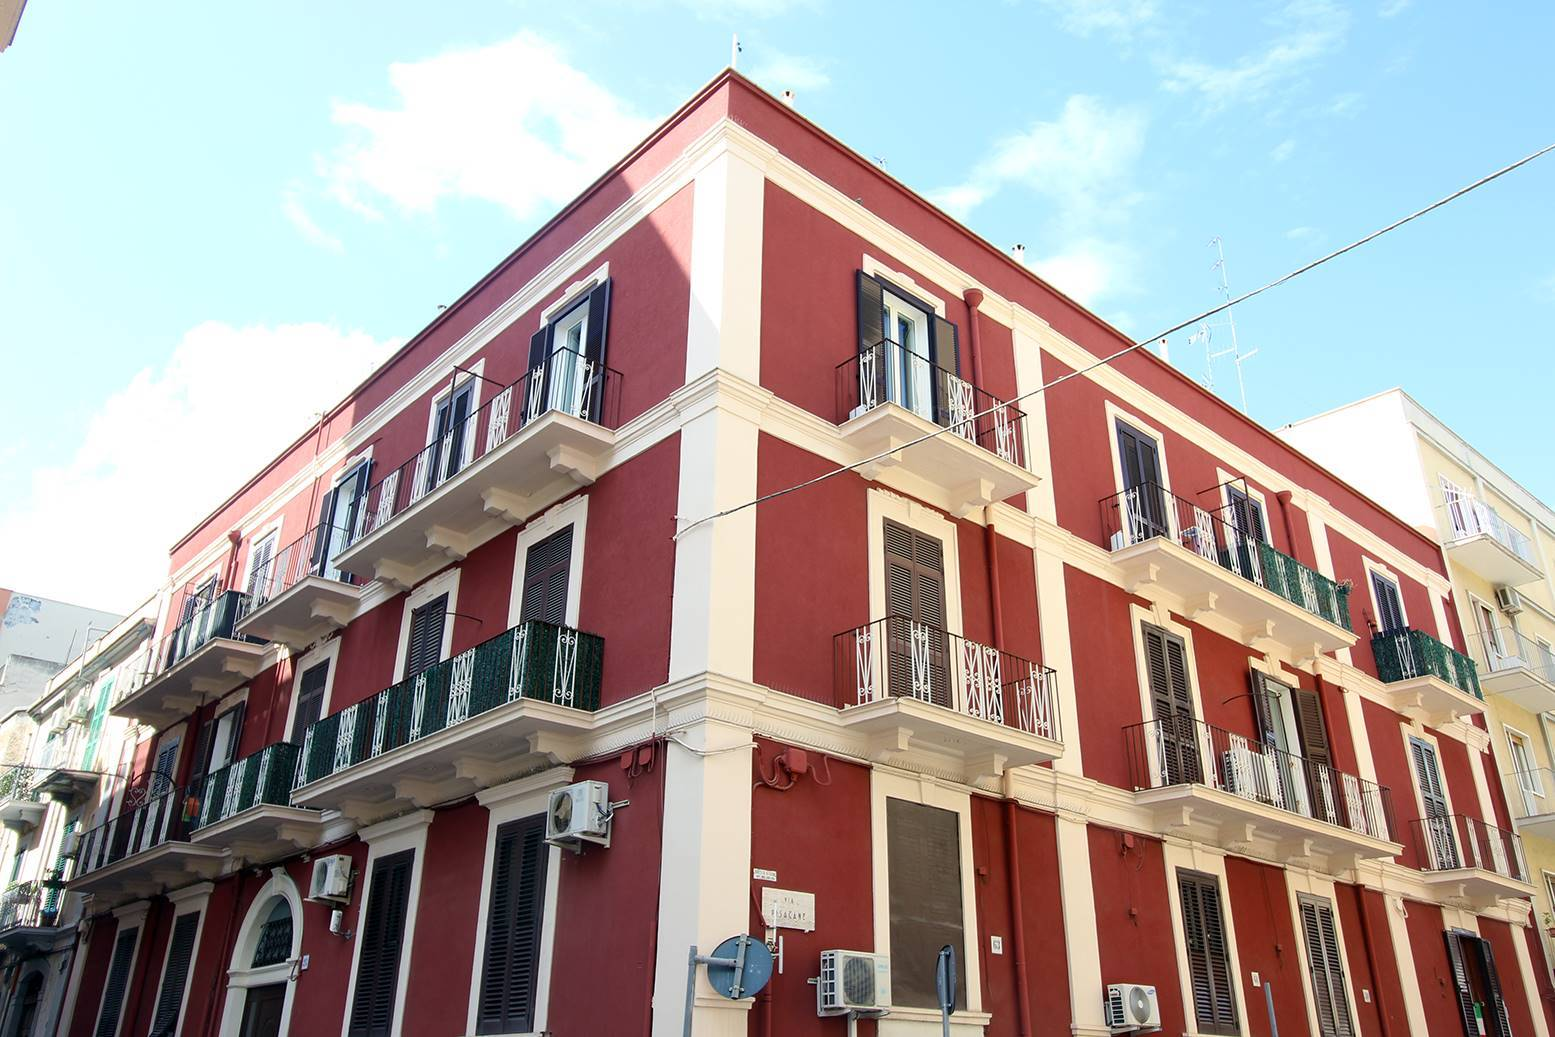 SAN PASQUALE, BARI, Apartment for sale of 57 Sq. mt., Restored, Heating Individual heating system, placed at 3° on 3, composed by: 2 Rooms, Separate kitchen, , 1 Bedroom, 1 Bathroom, Balcony, Price: